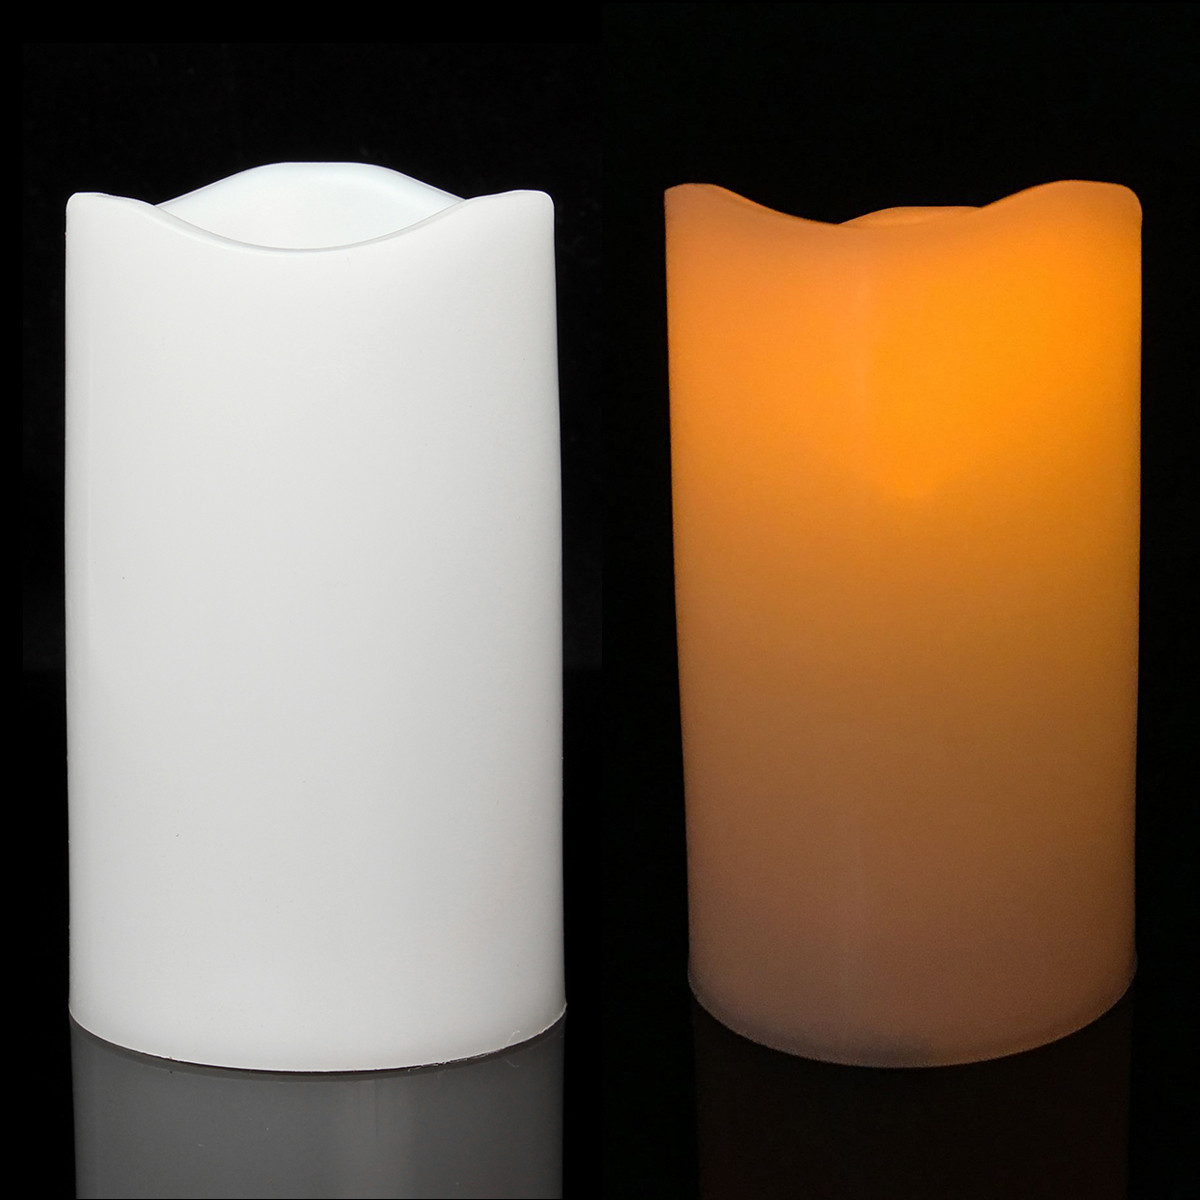 7.5x12.5cm Battery Operated Flameless LED Candle Night Light Room Decoration Lamp